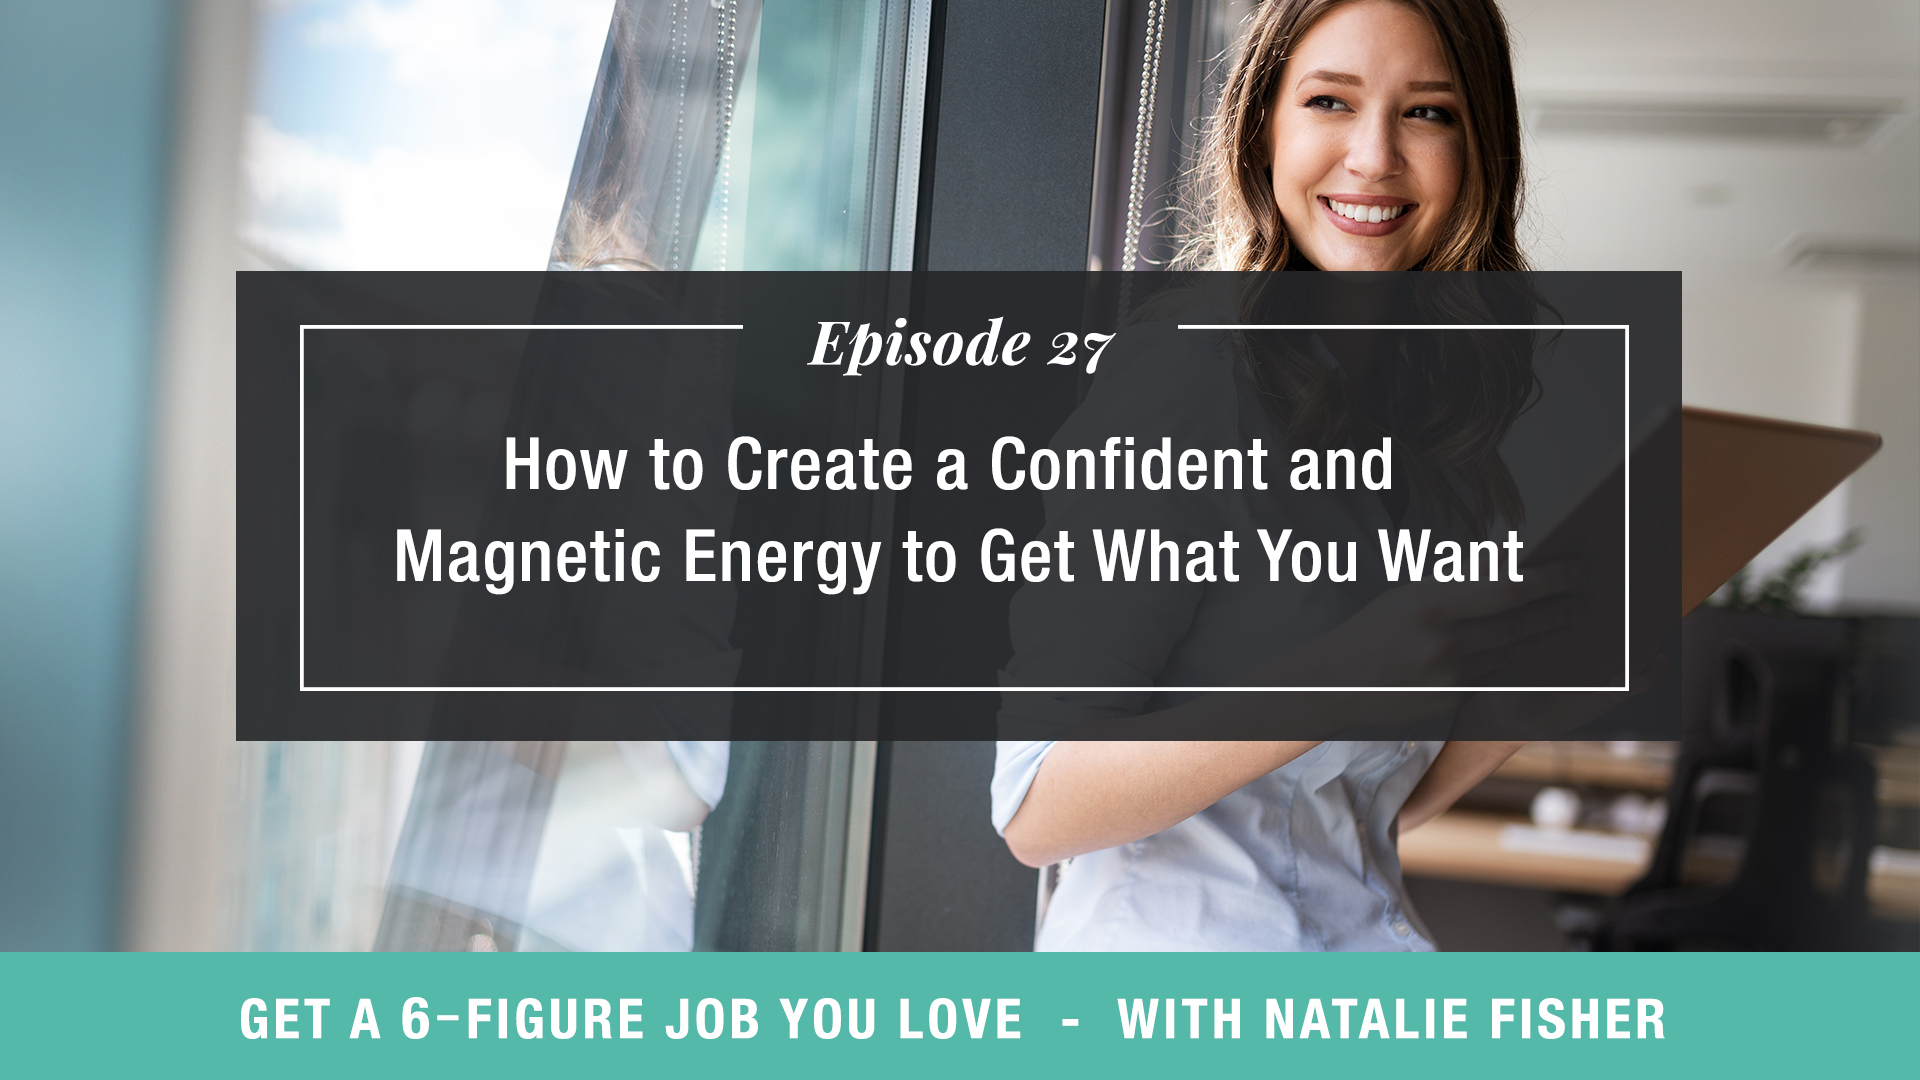 How to Create a Confident and Magnetic Energy to Get What You Want